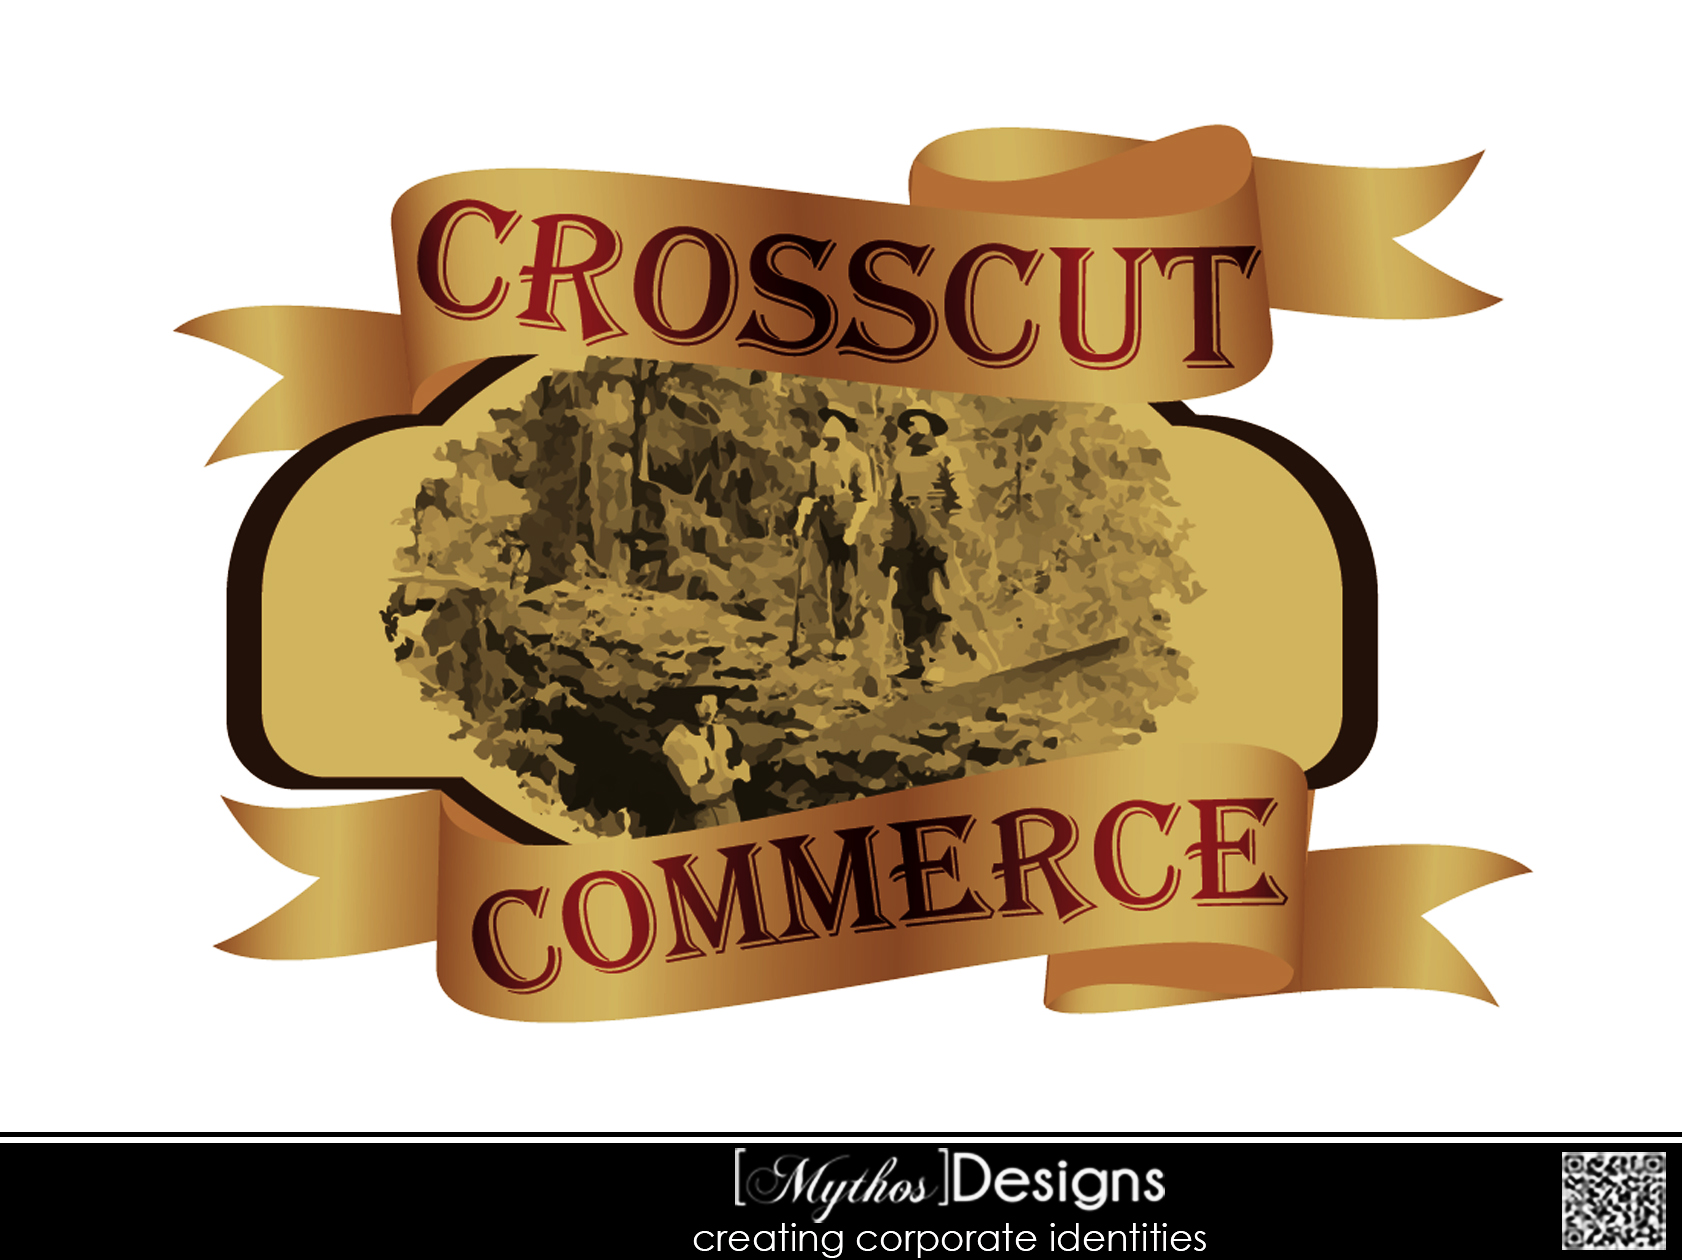 Logo Design by Mythos Designs - Entry No. 52 in the Logo Design Contest New Logo Design for CrossCut Commerce.